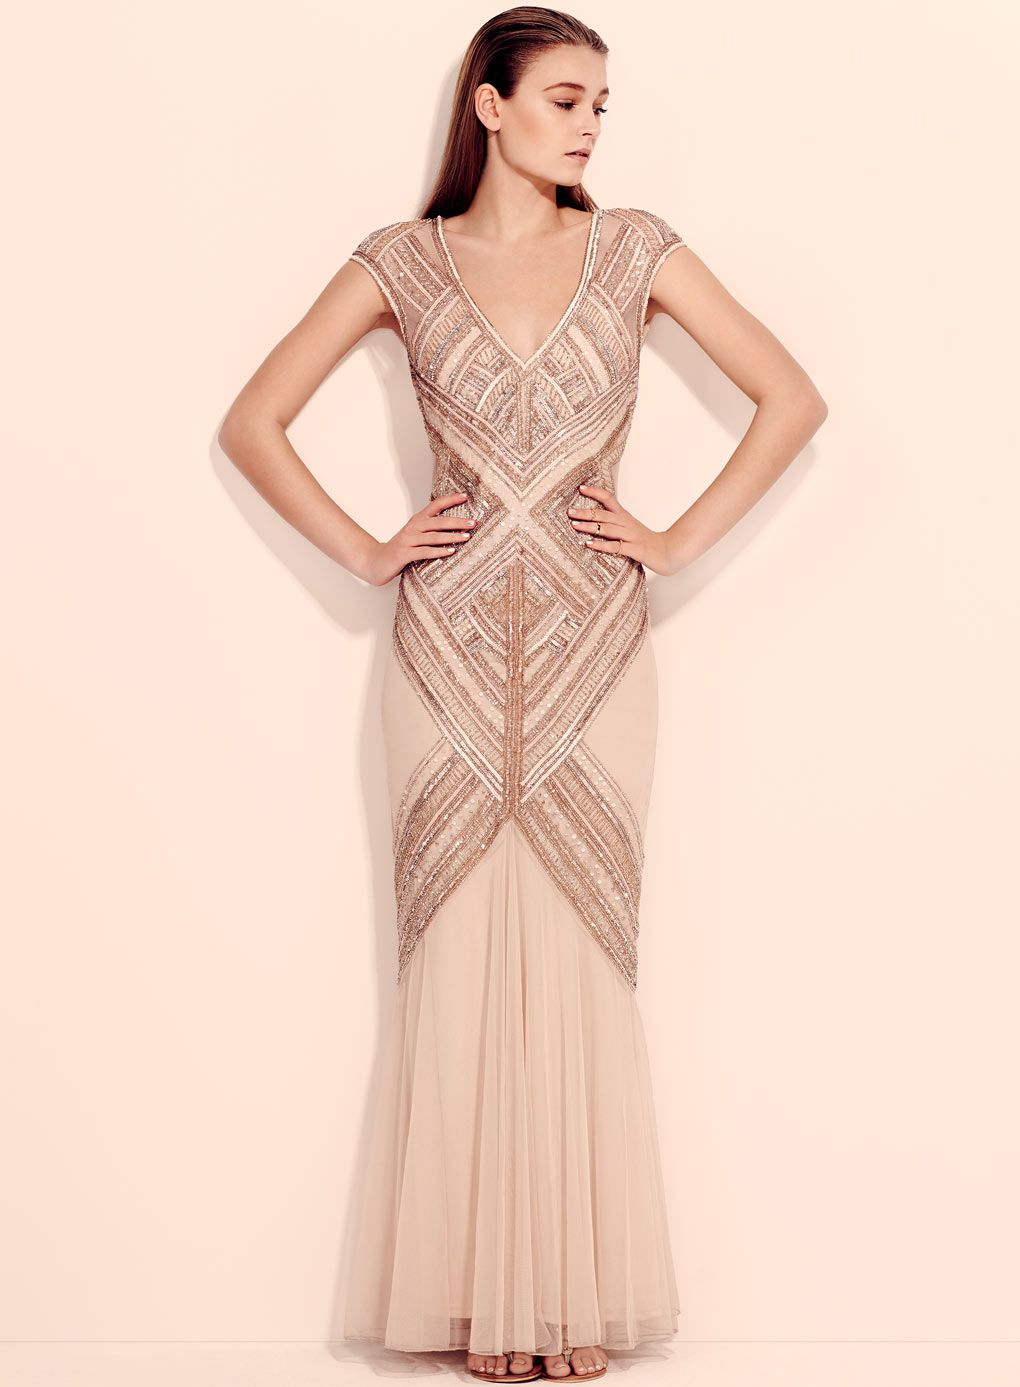 9c707bdd312cd Embellished Maxi Dress - Maxi Dresses - Dress Shop - Miss Selfridge ...